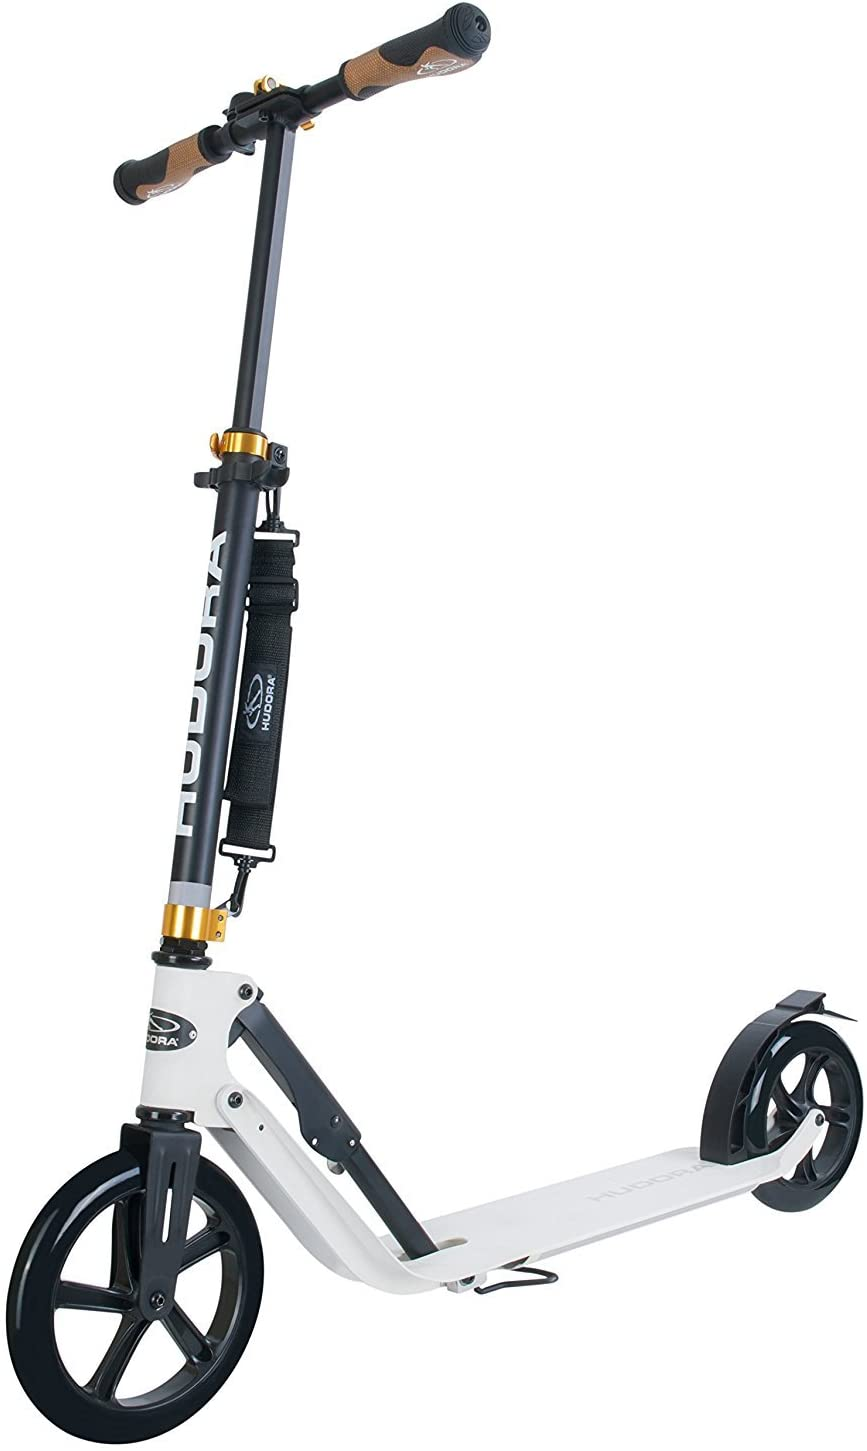 Top 10 Best Electric Scooters Under 300 [Buying Guide Reviews - 2021] 10